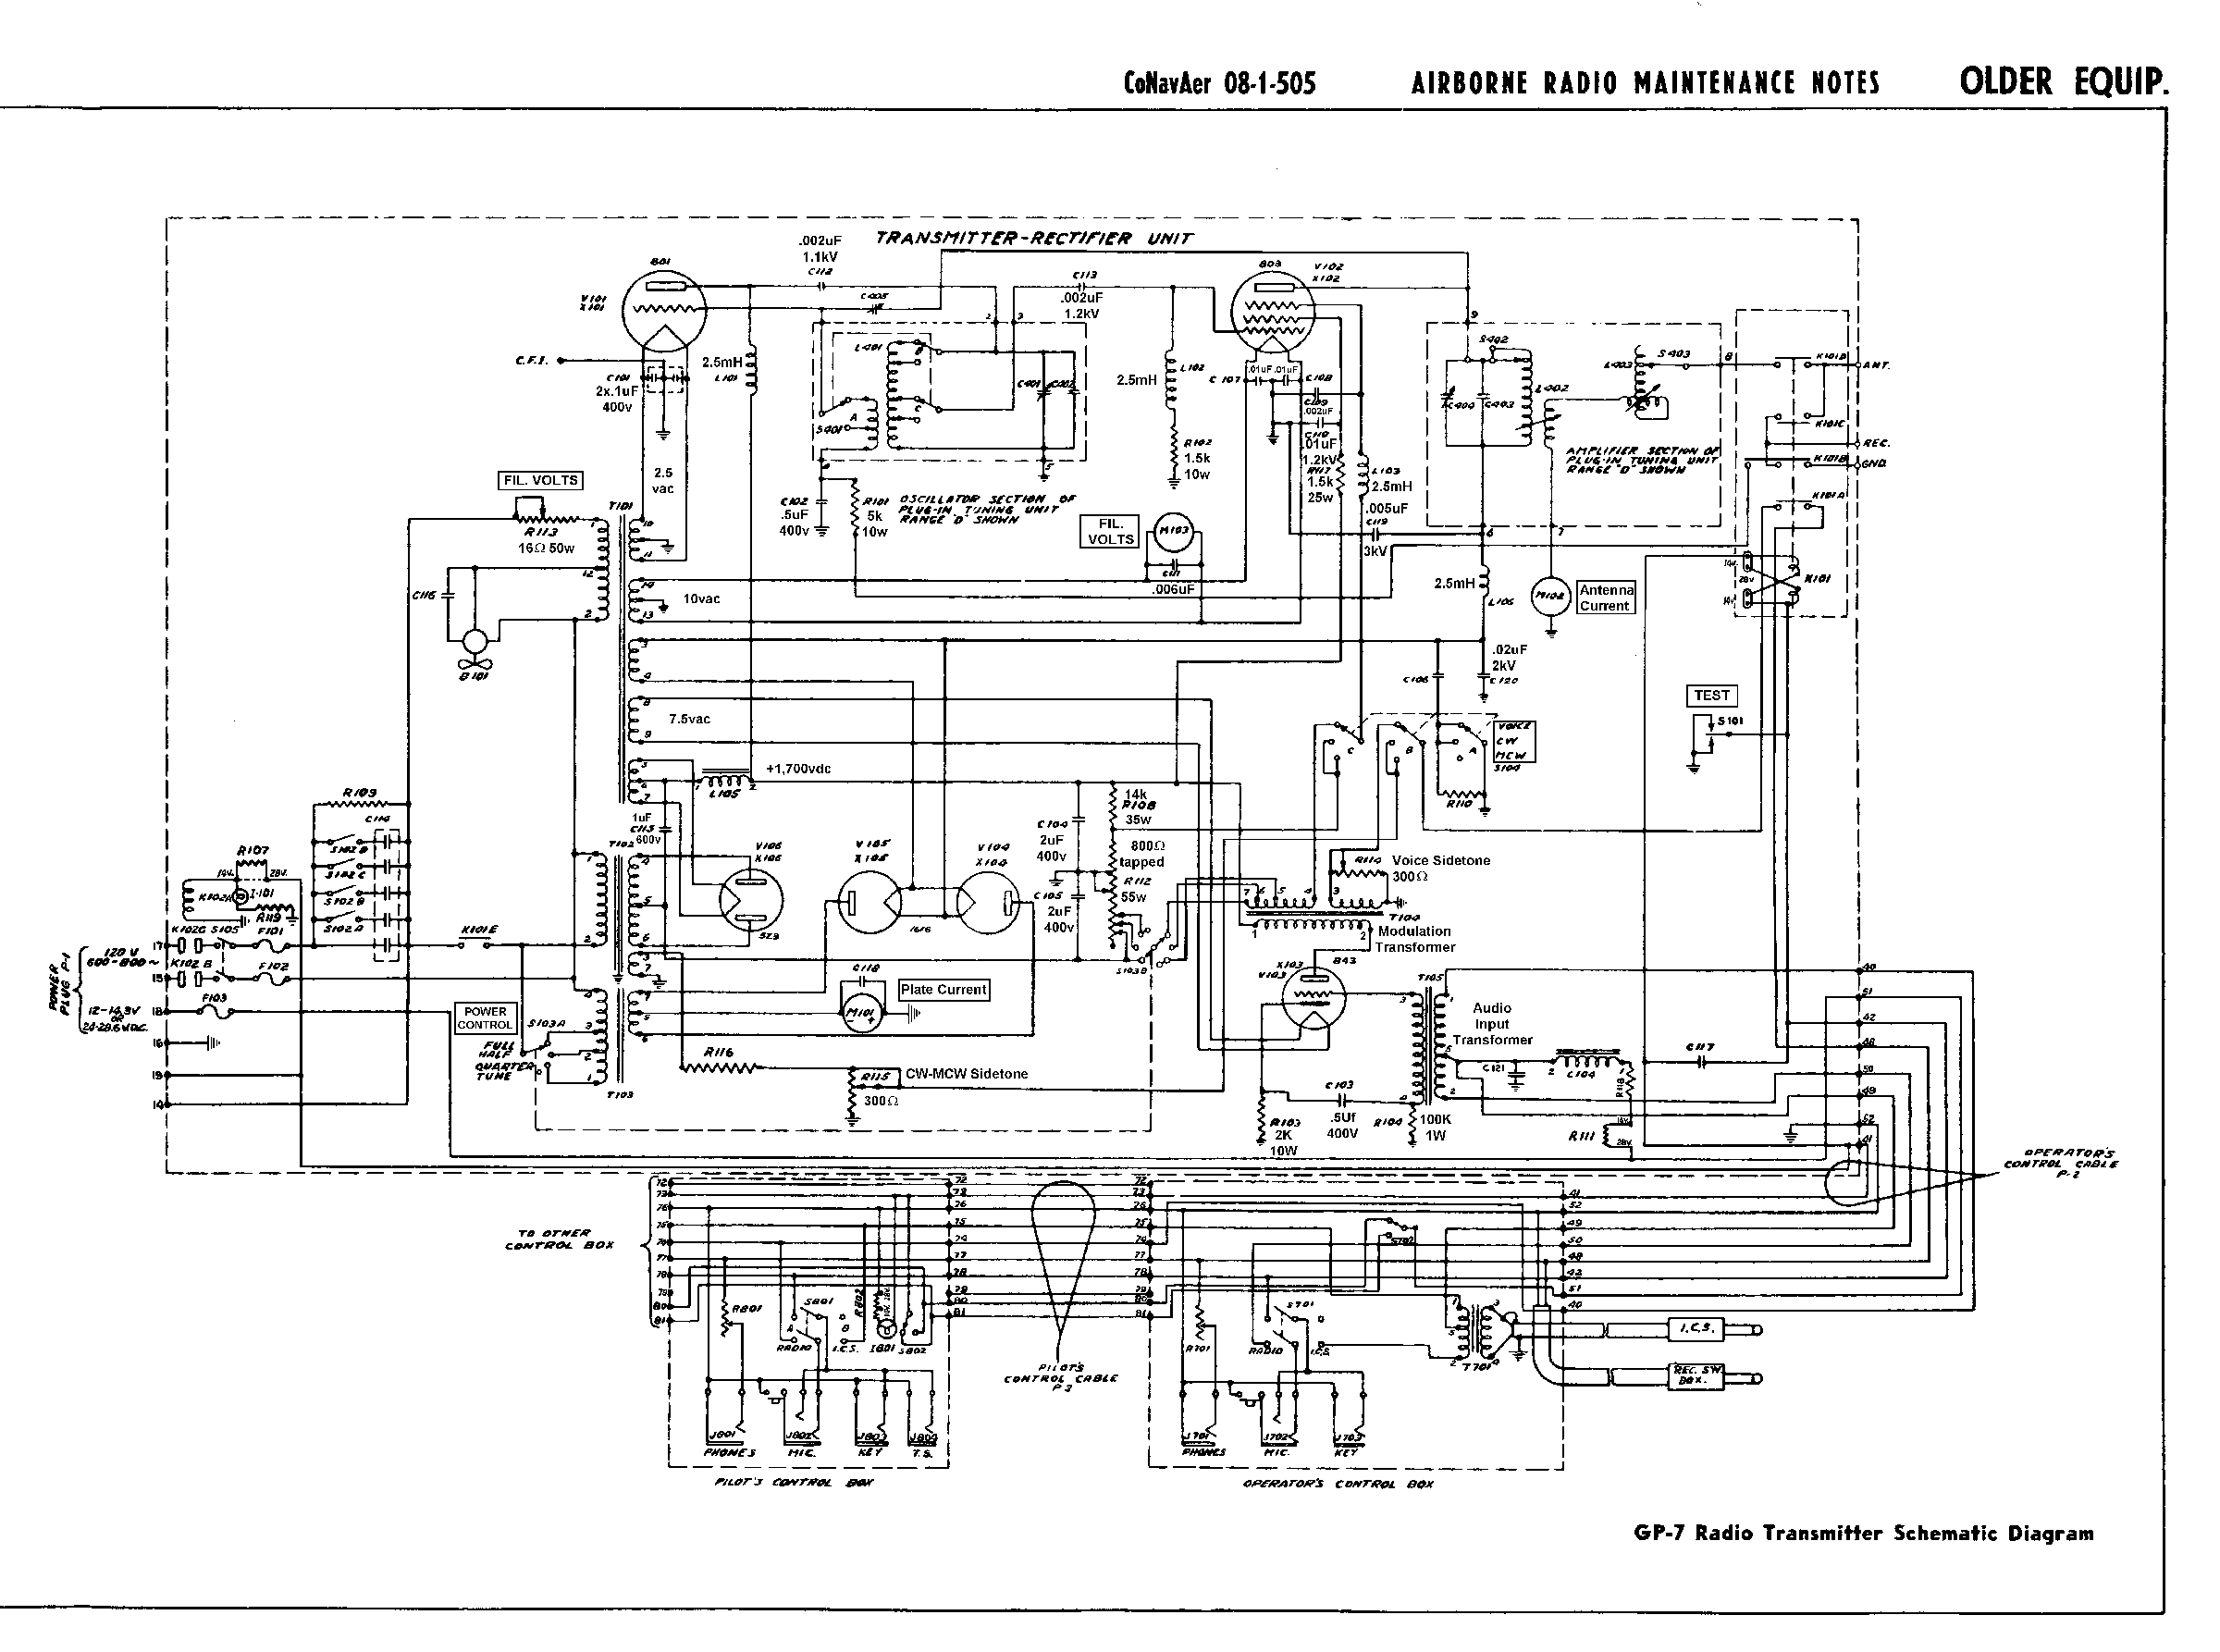 Wiring Diagram Aircraft Drawings Get Free Image About Wiring Diagram